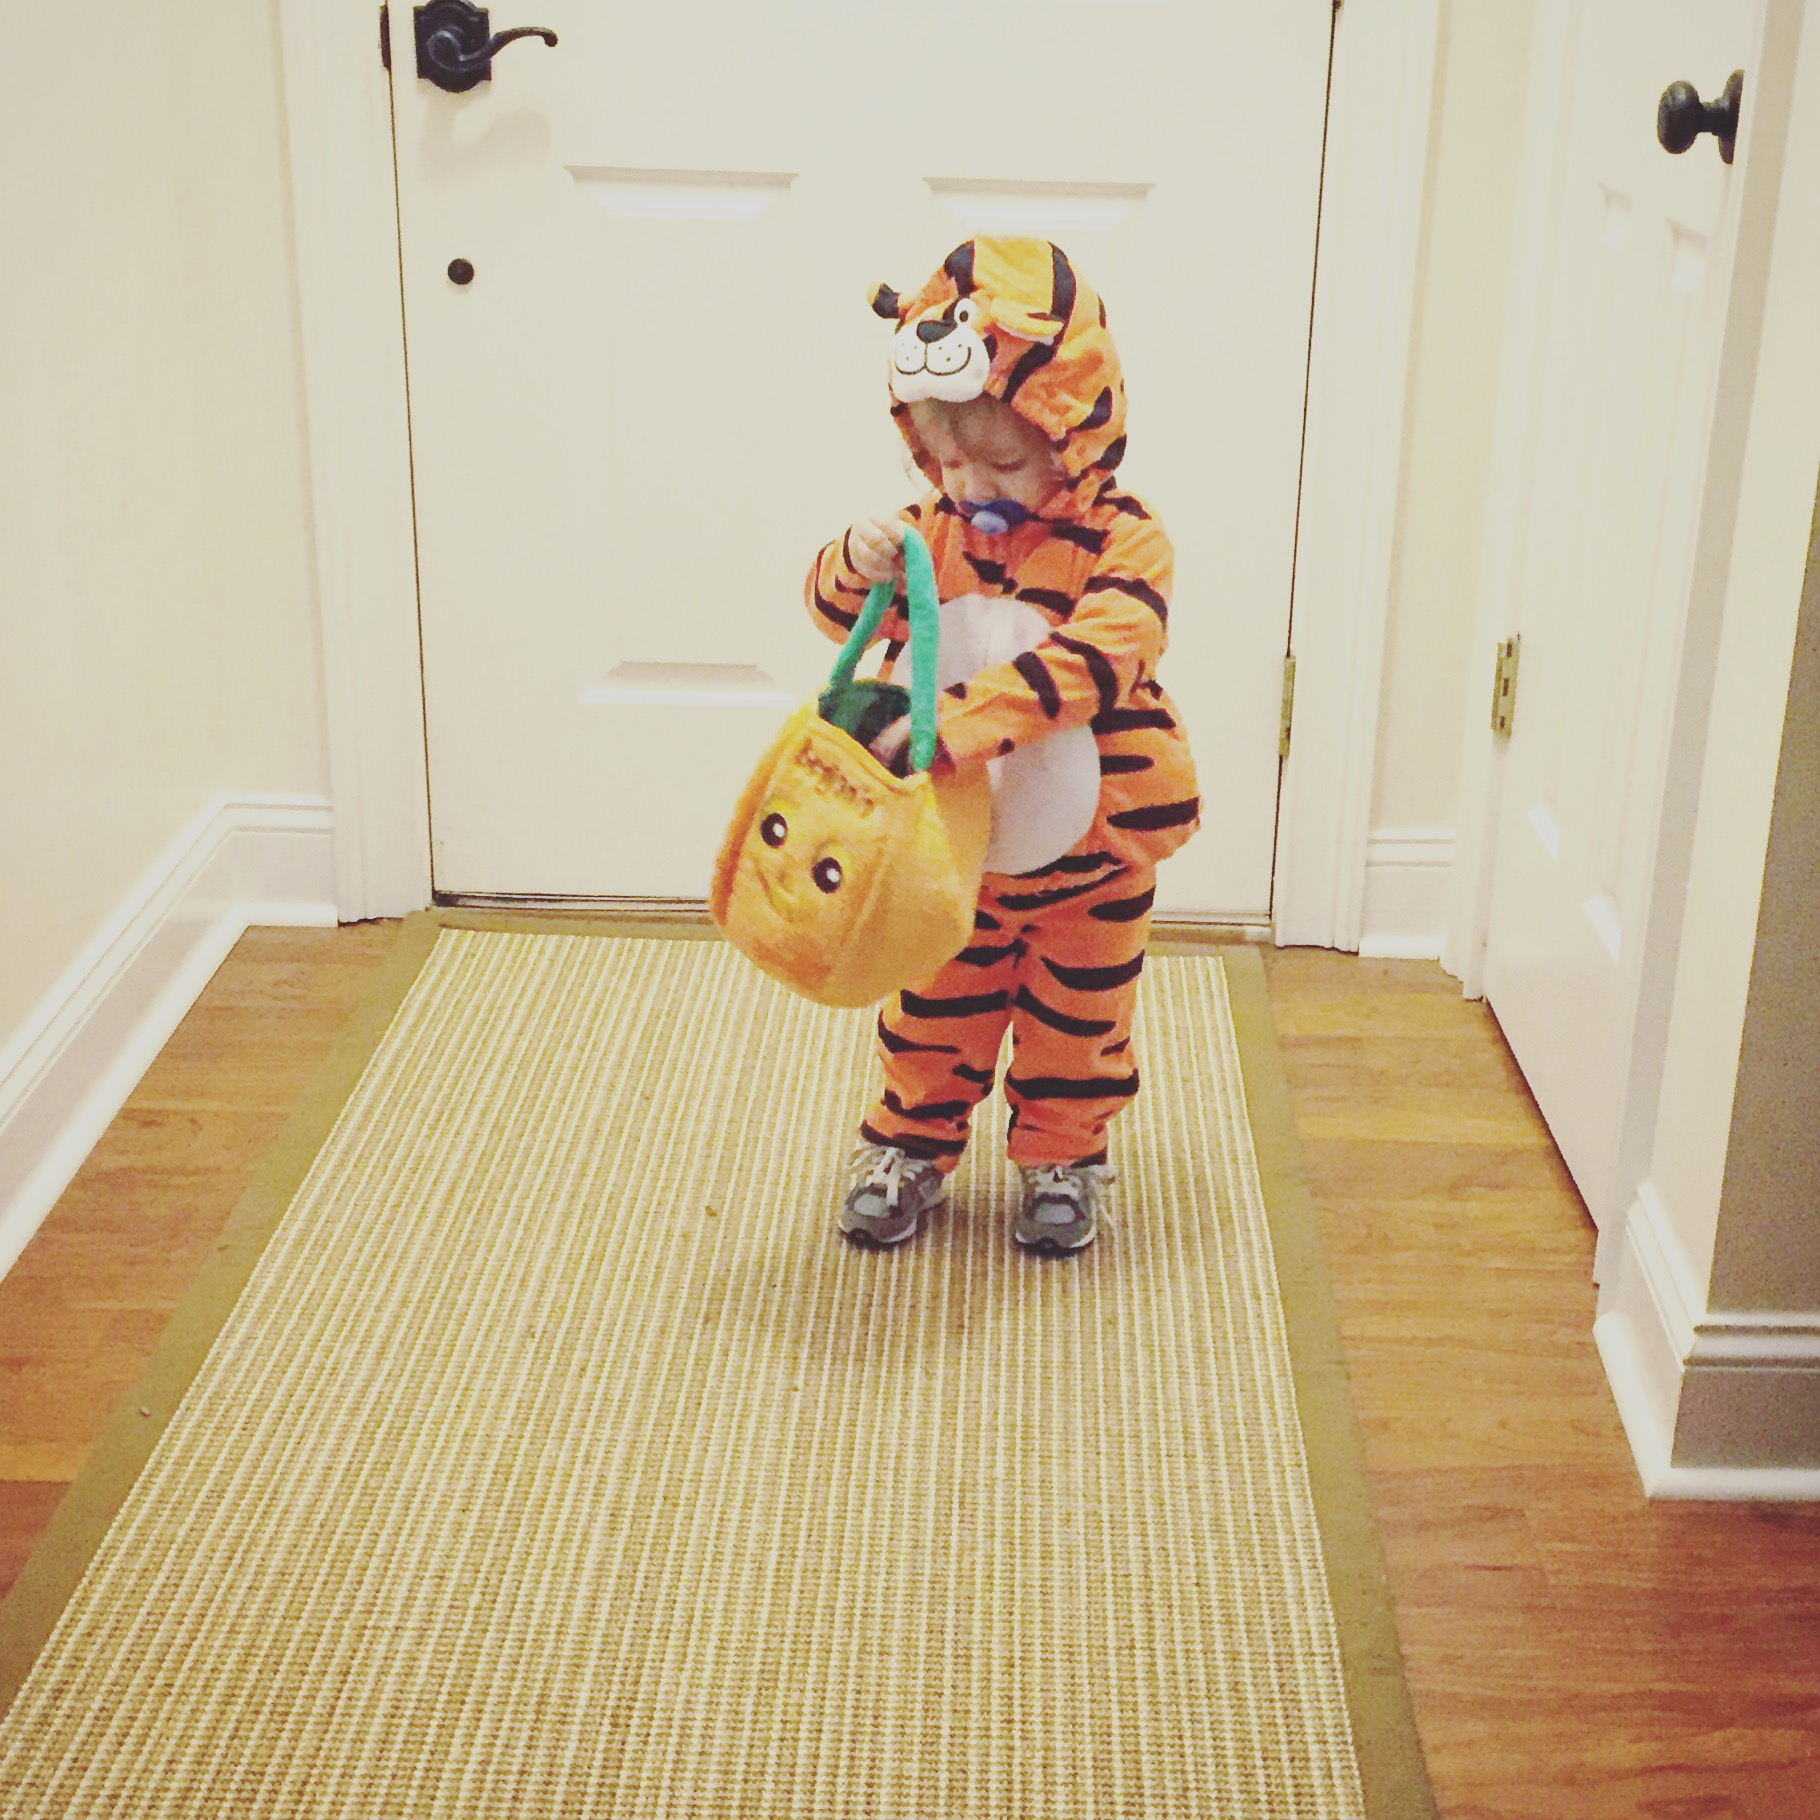 Training may have been a little crazy last week, but we had a fun Halloween. There was a Sweet little tiger on the prowl in my house.